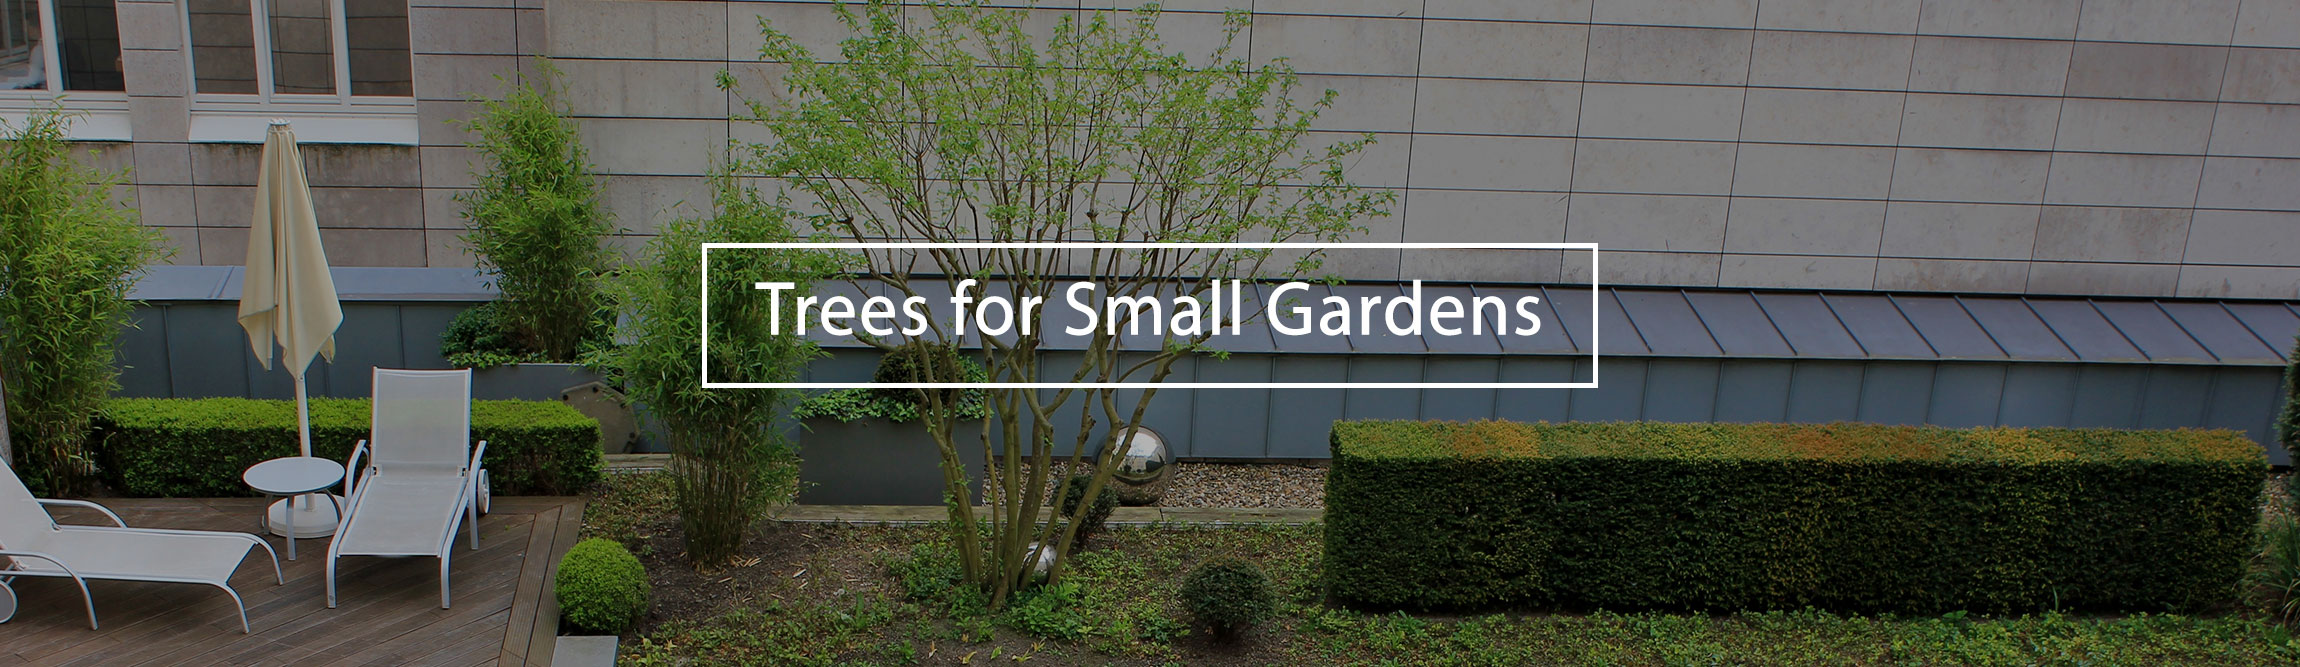 trees-for-small-gardens